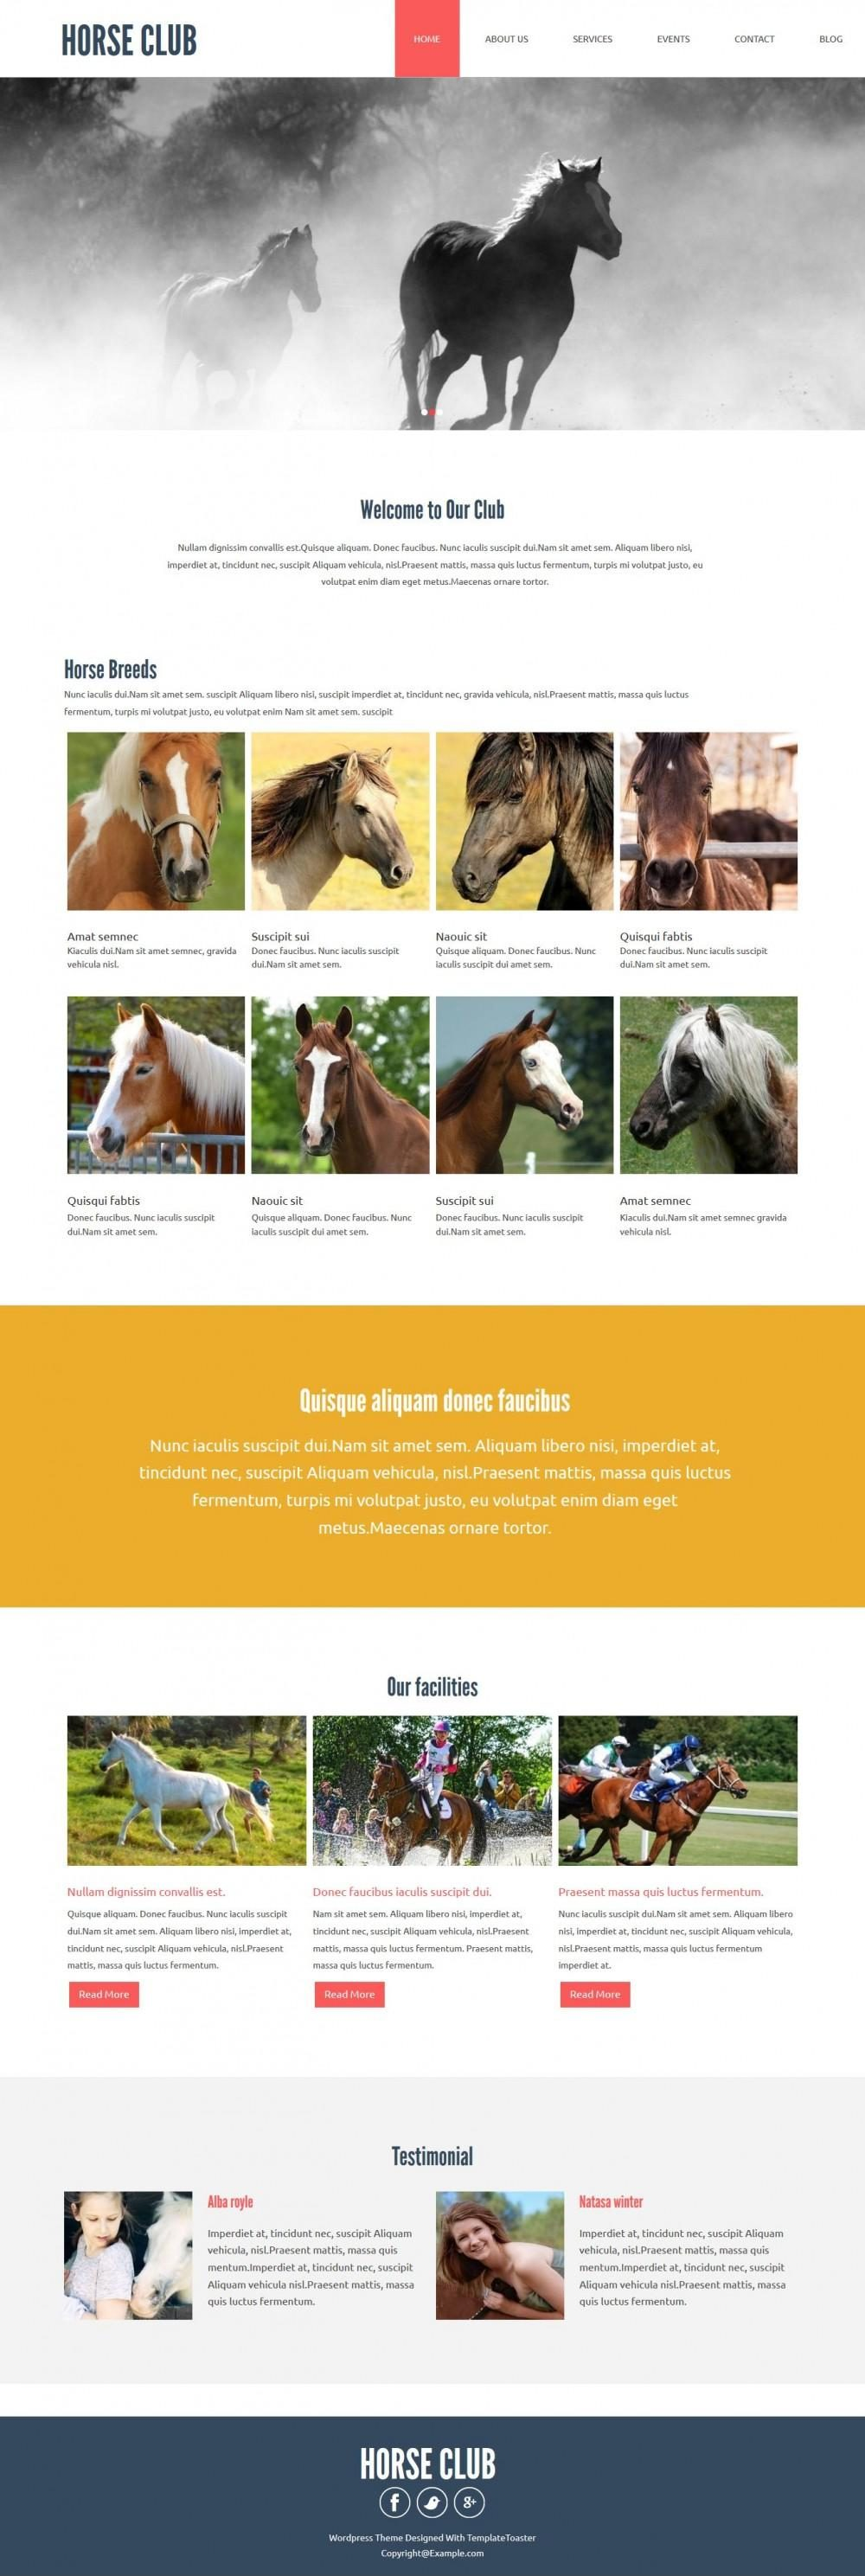 horse club joomla template for horse riding club